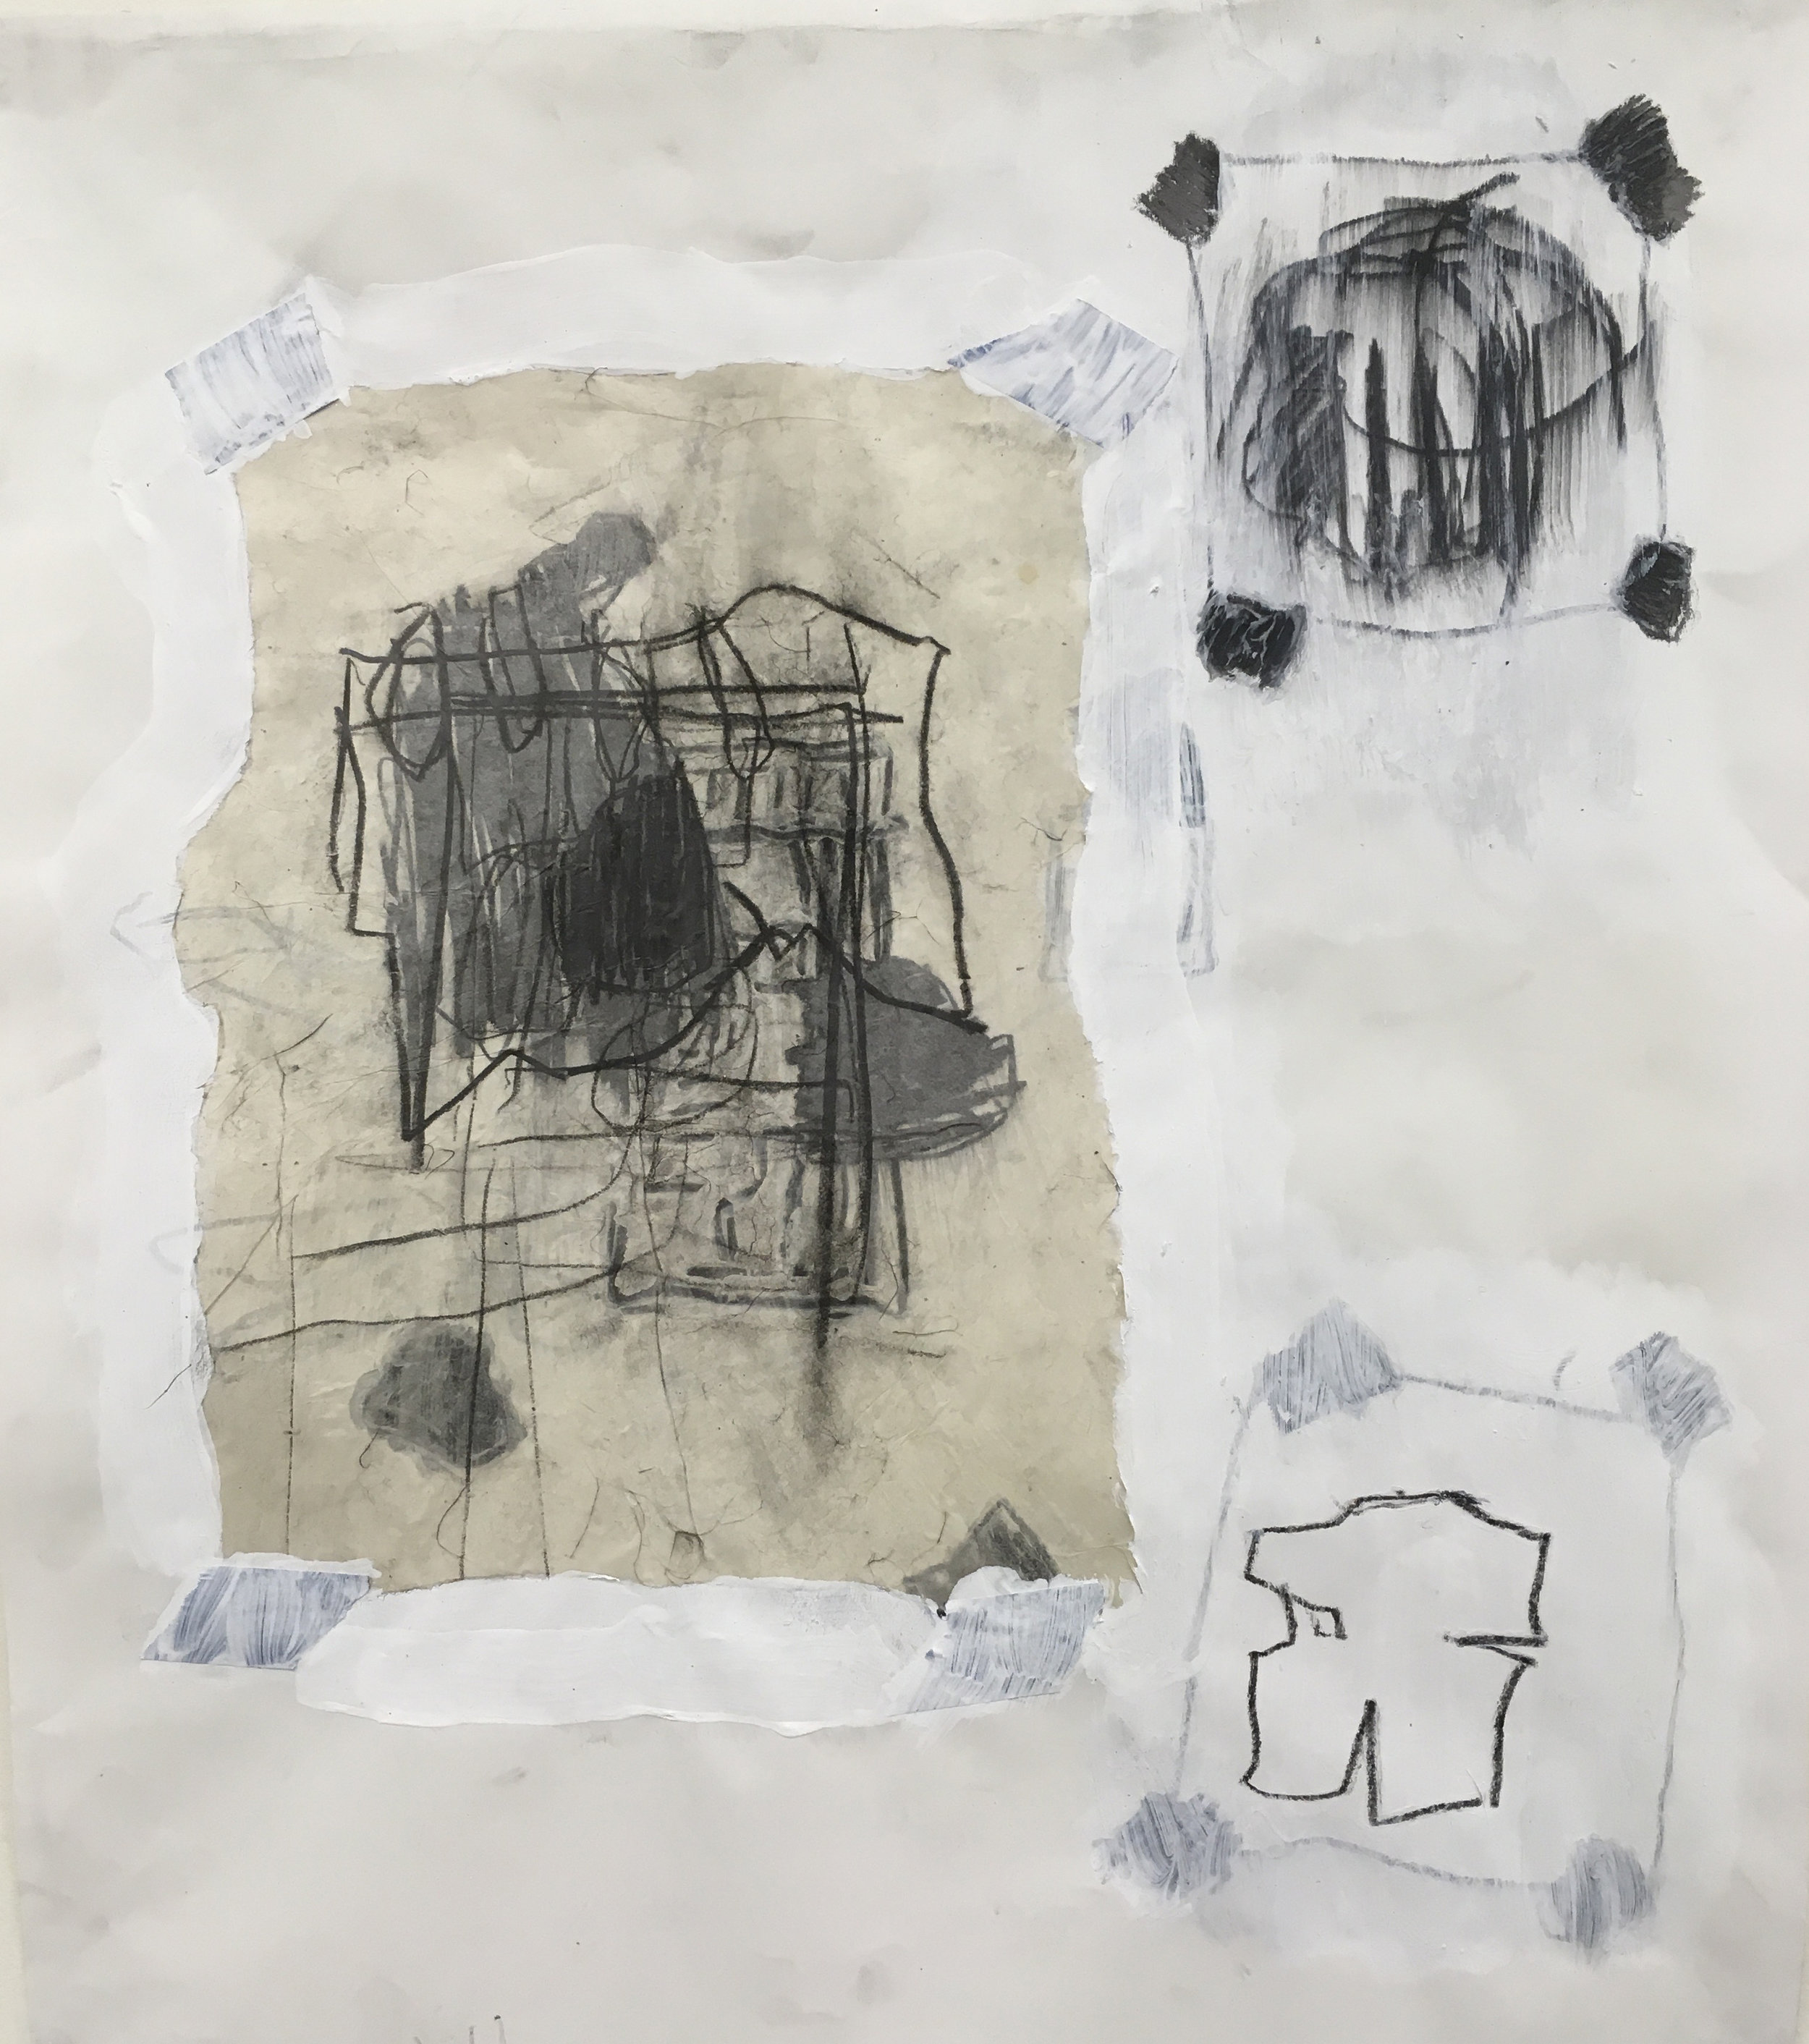 """Experimental Drawing and Sketchbook Development, collage, charcoal, gesso, tape, 22"""" x 30"""", 2018"""